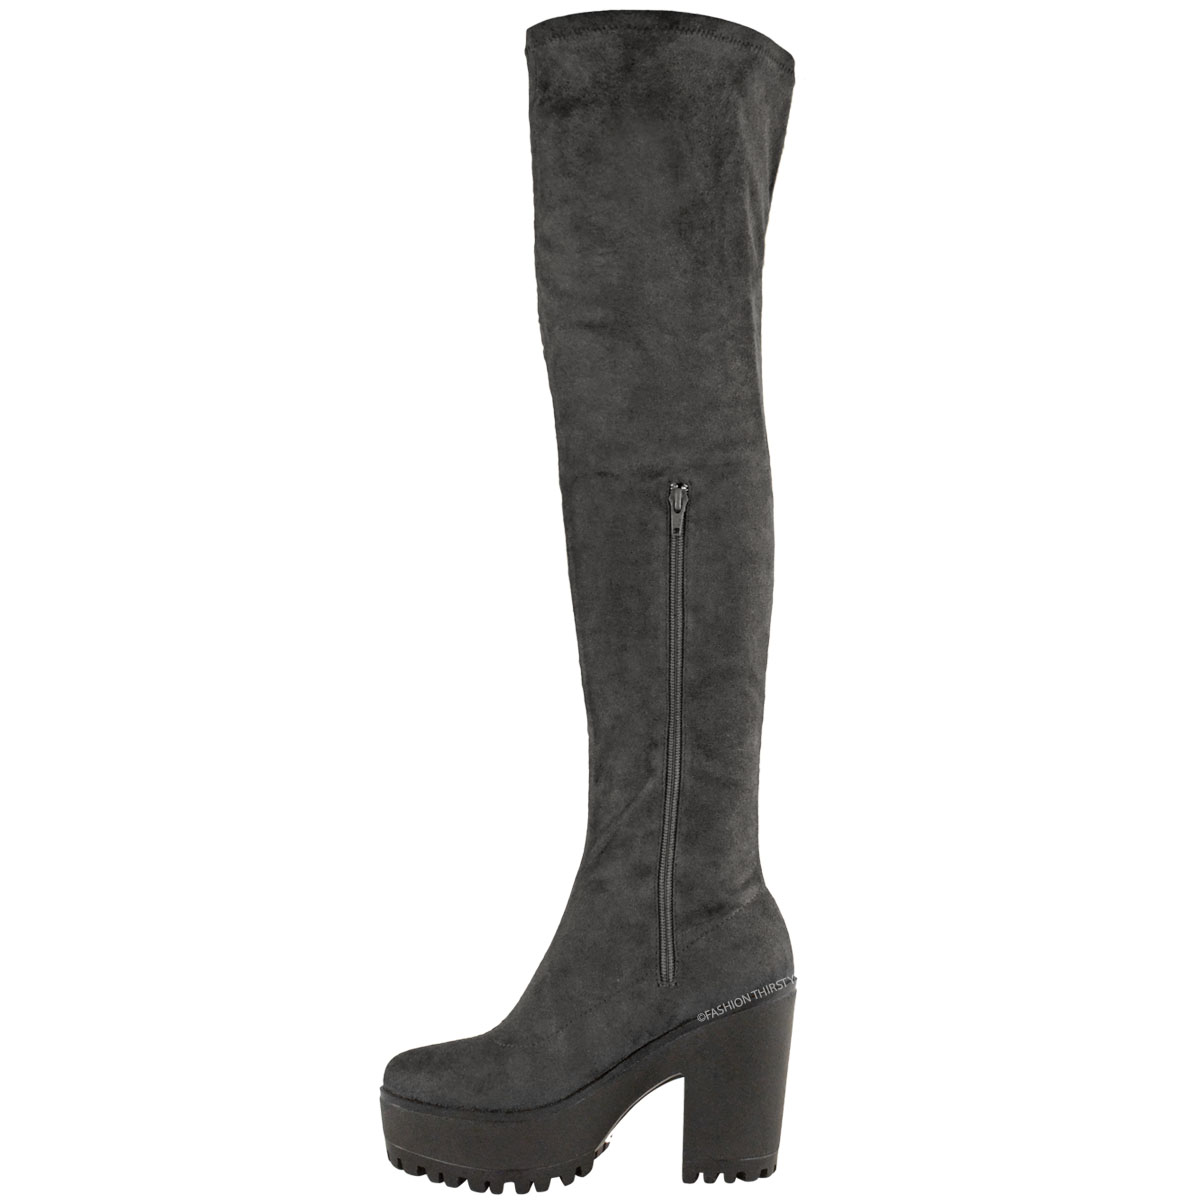 1a2f0299d6f Details about WOMENS LADIES SEXY OVER THE KNEE THIGH HIGH CHUNKY PLATFORM  HEEL STRETCH BOOTS